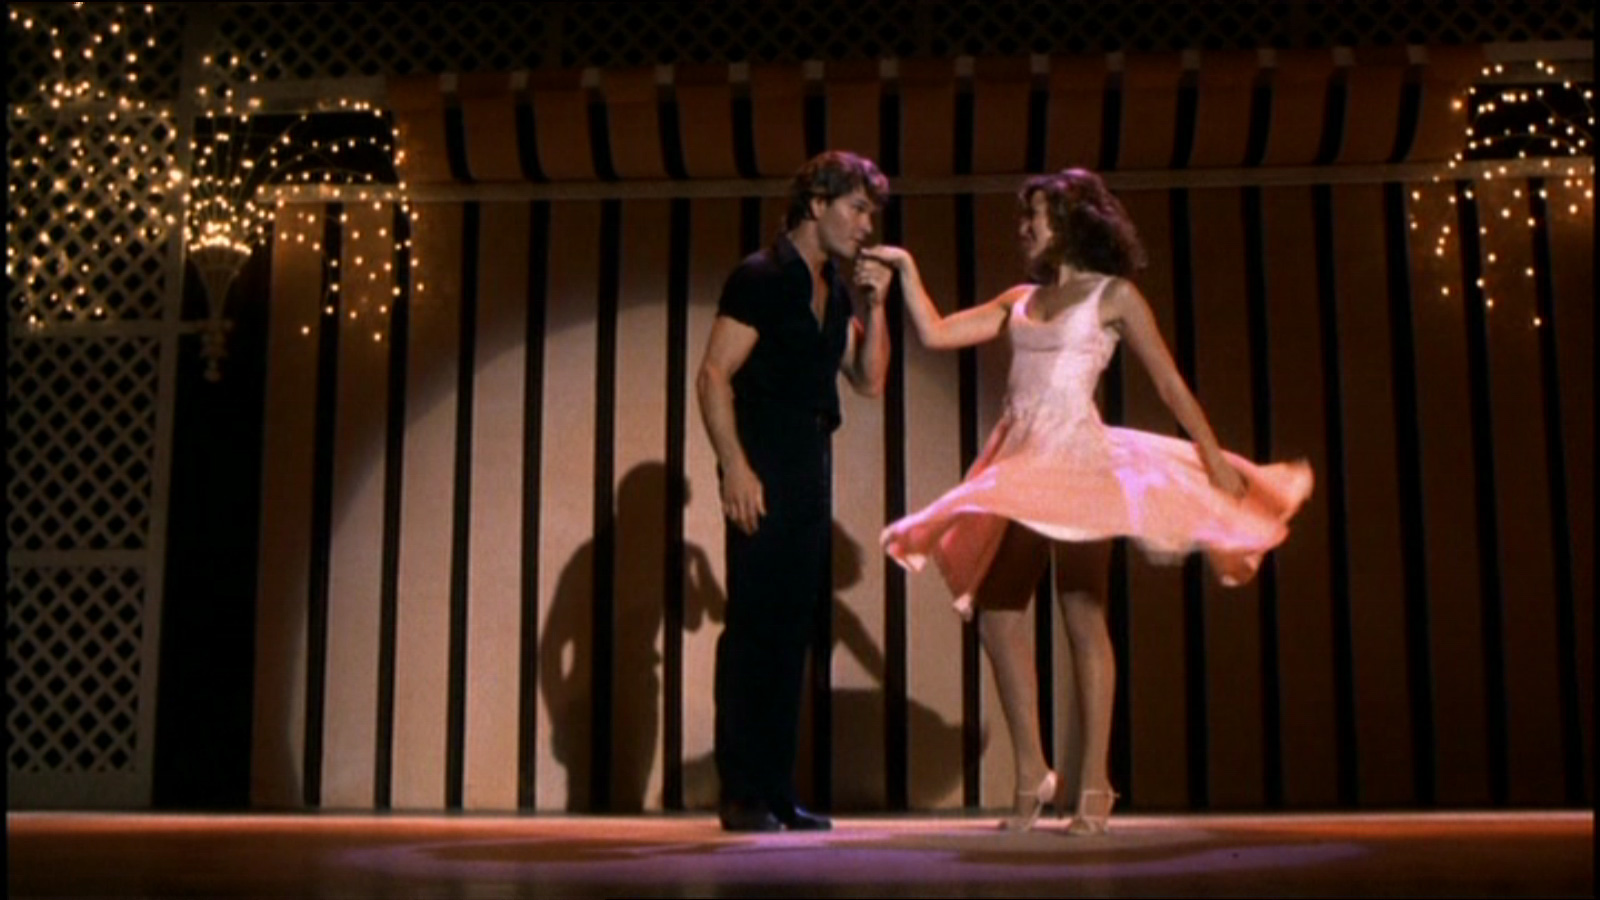 Dirty Dancing Movie Wallpapers 101 images in Collection Page 1 1600x900